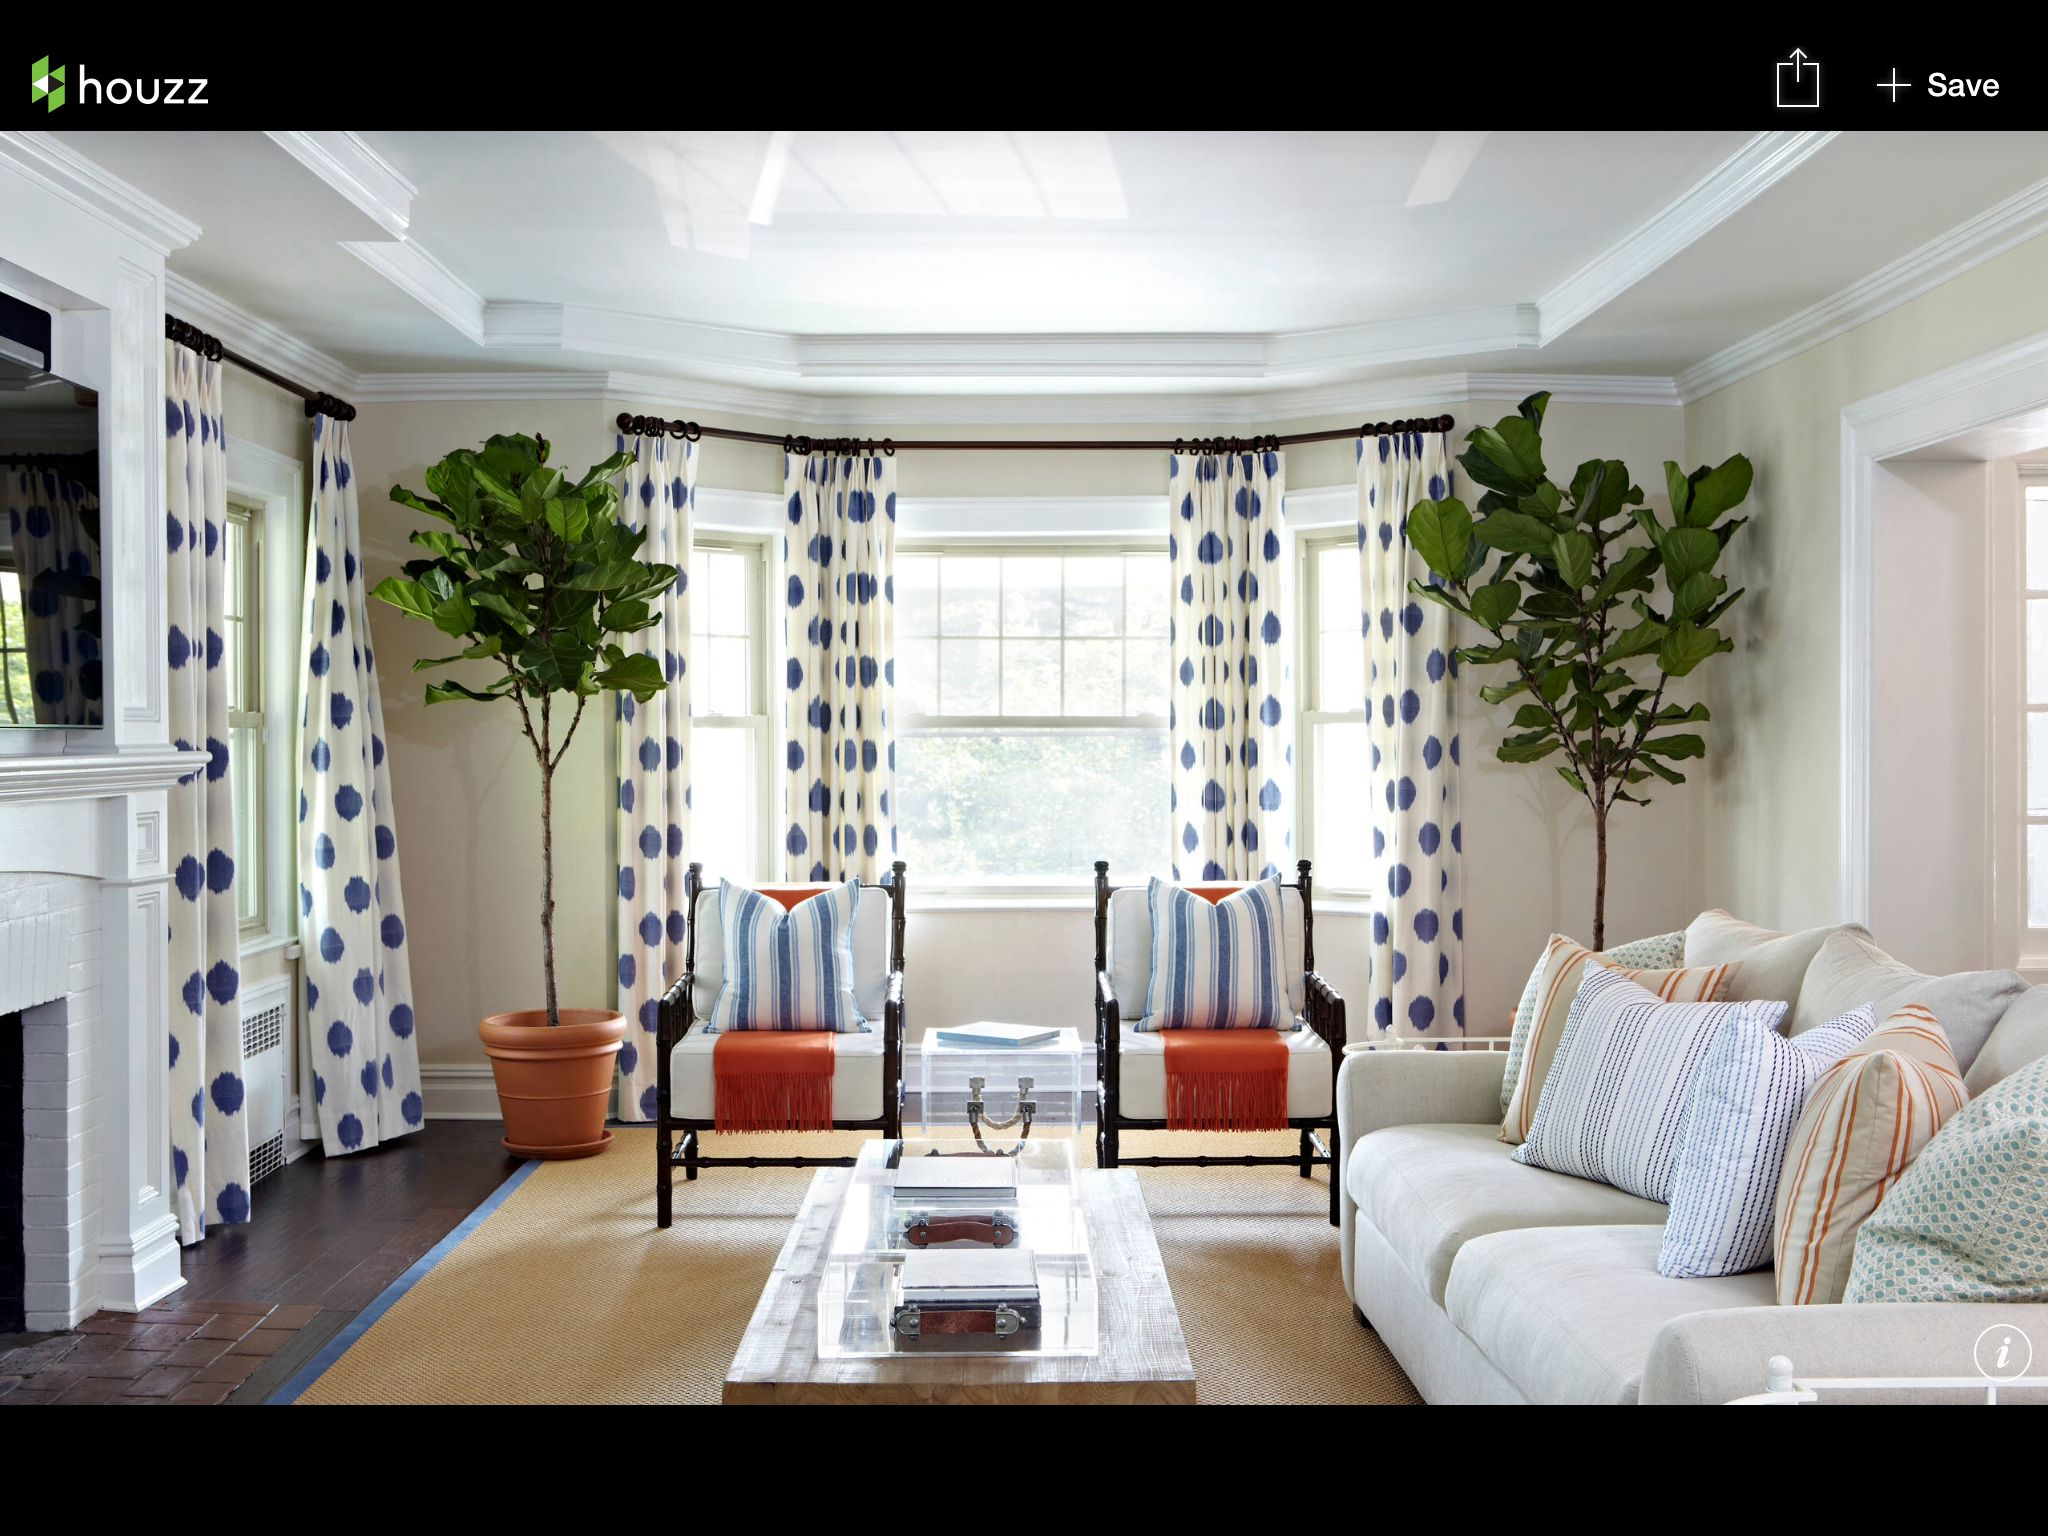 Living Room Design Houzz Cool Living Room Inspiration From Houzz  House Inspiration  Pinterest Decorating Inspiration